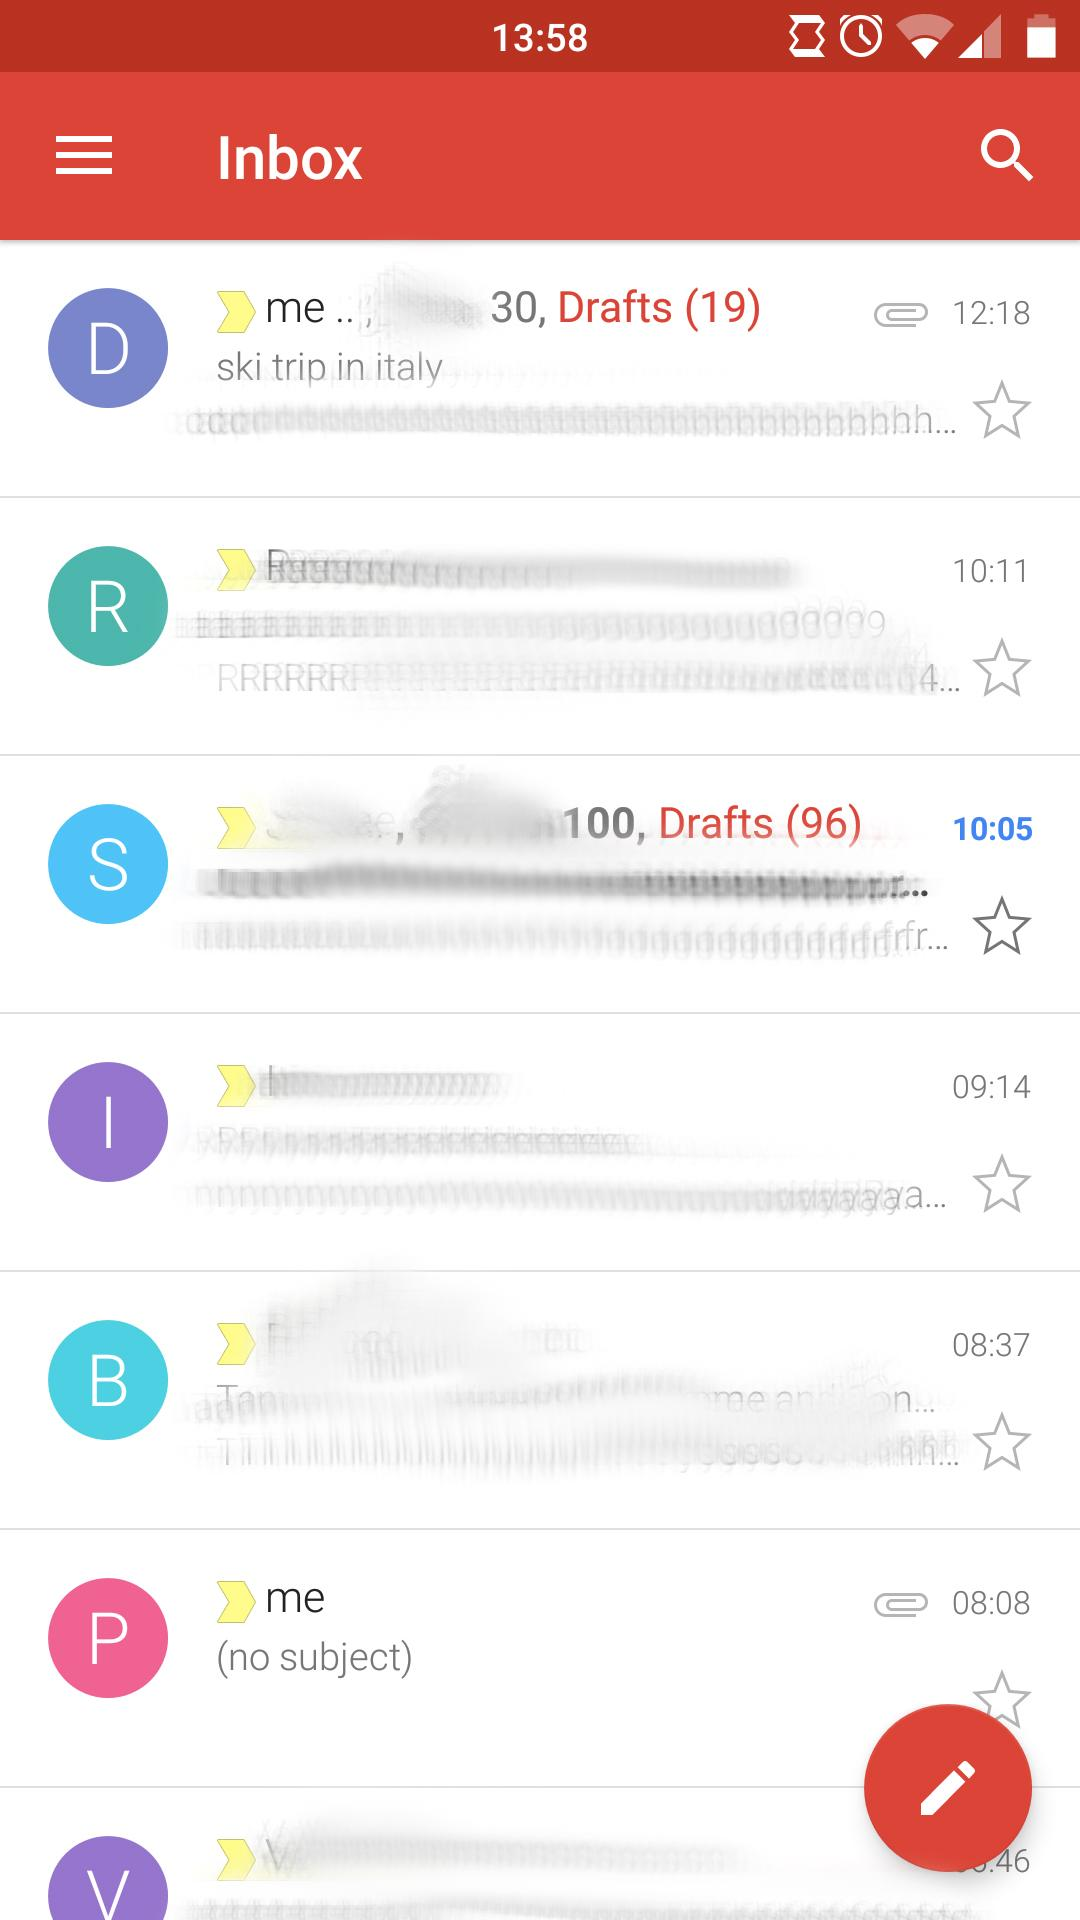 Gmail App on Android creates and saves multiple drafts of already